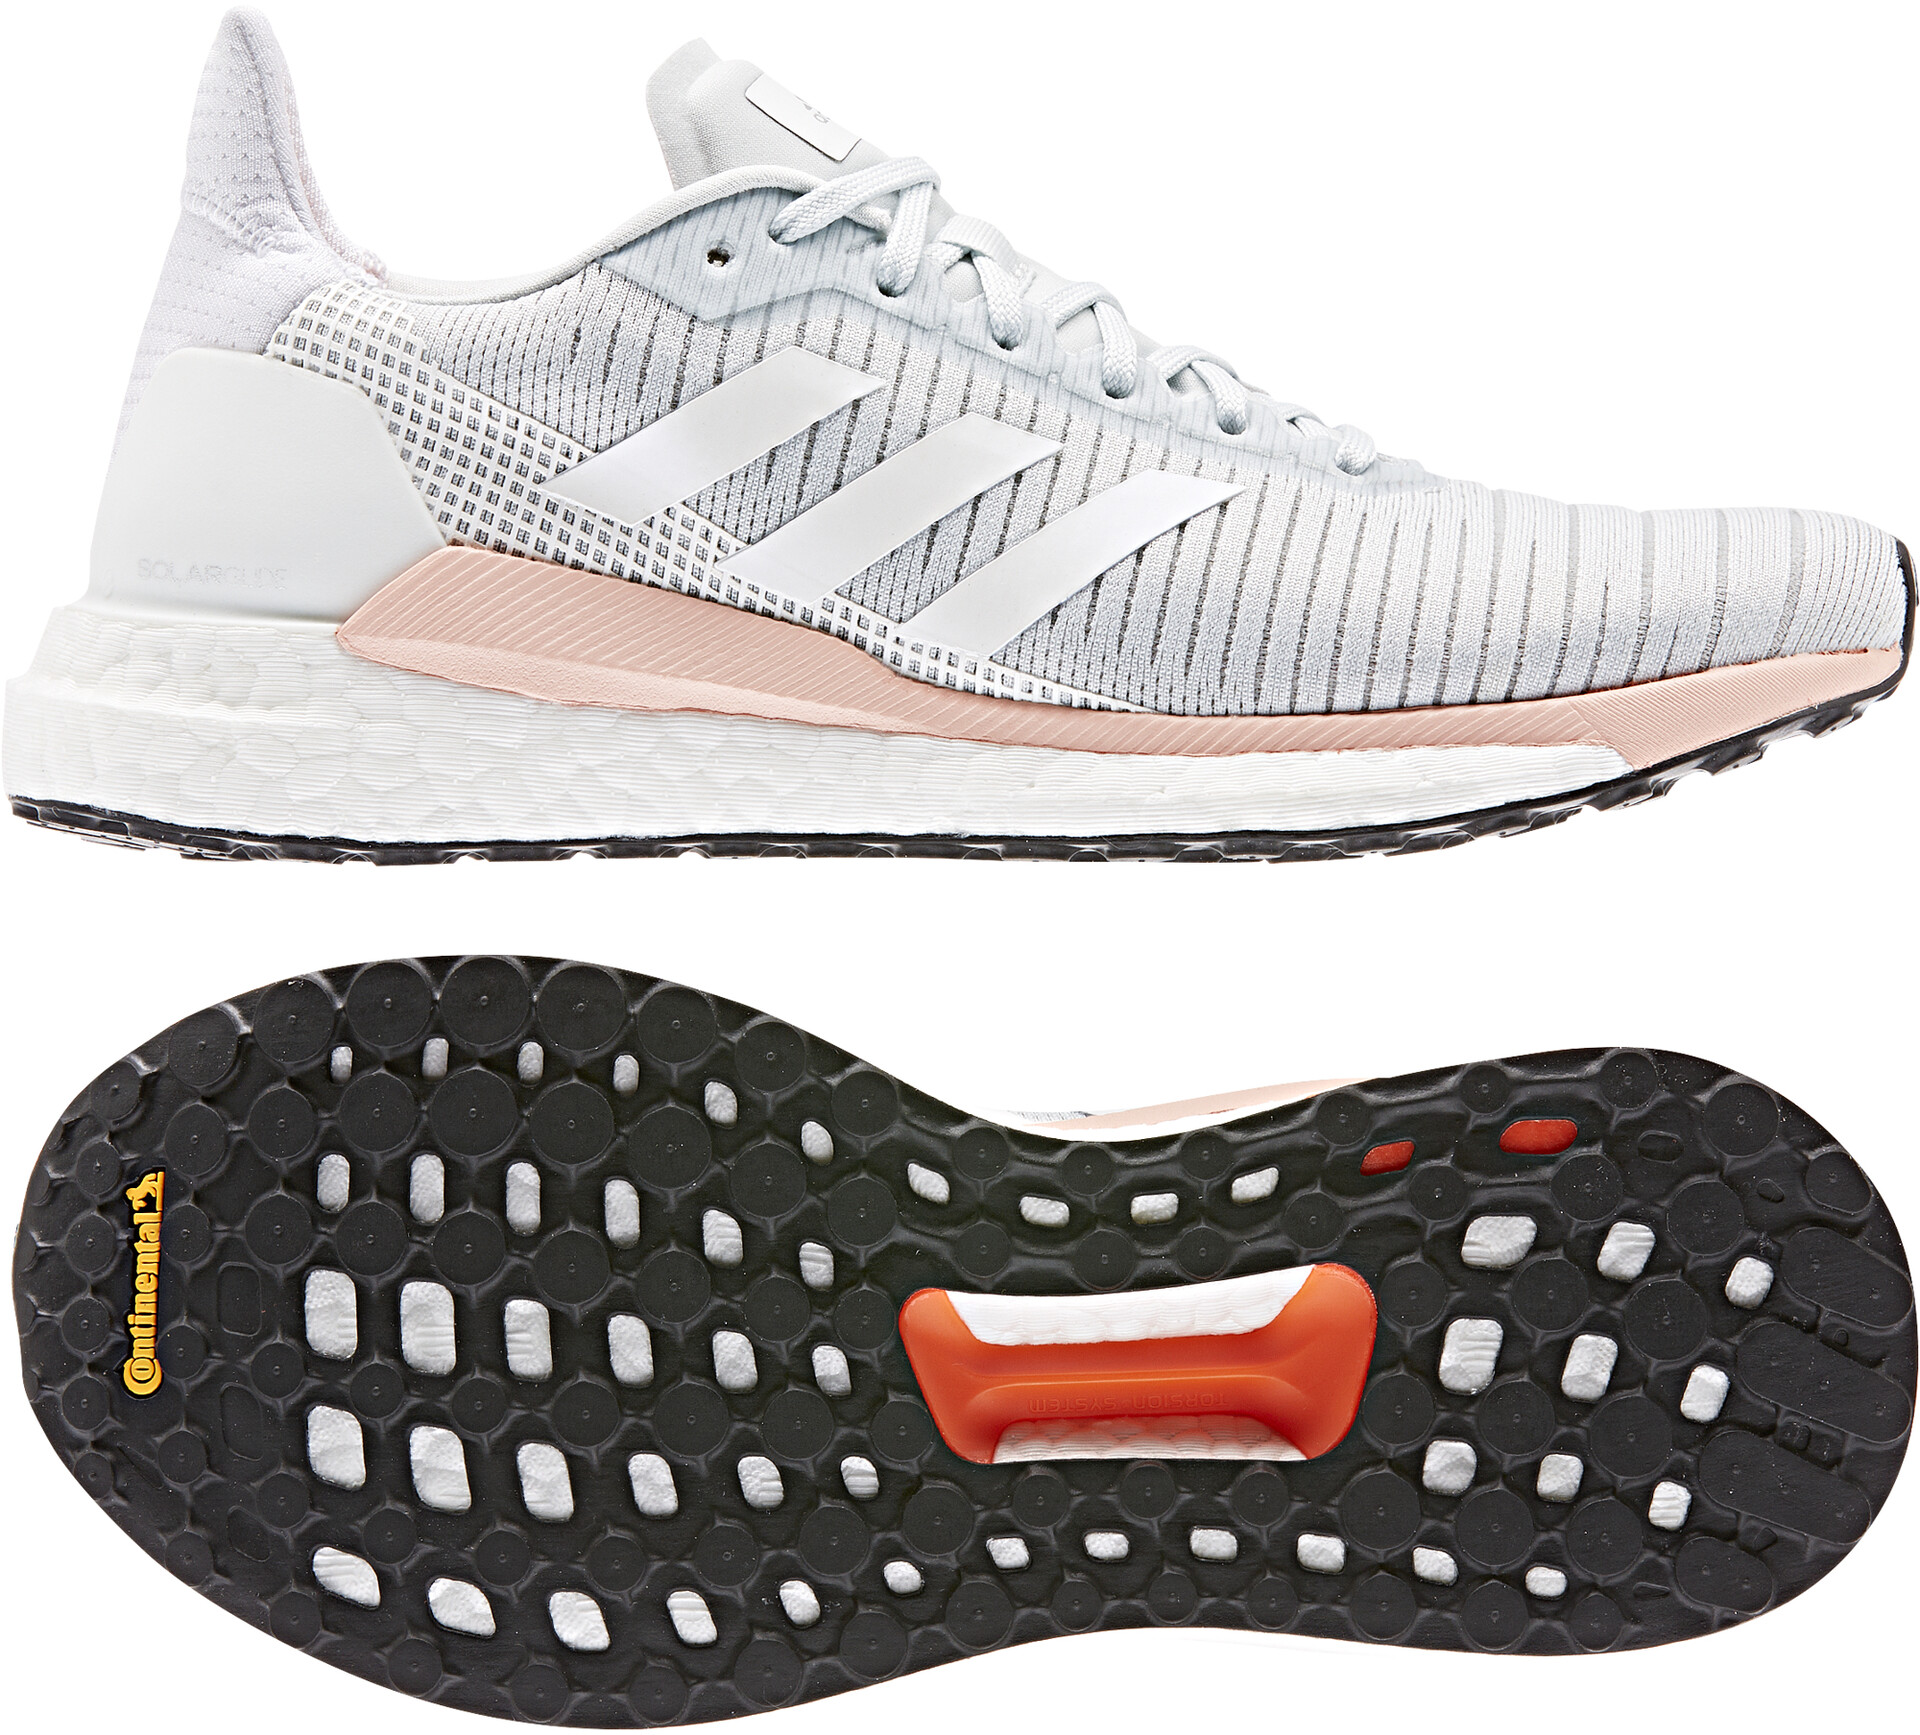 chaussures solar bottes adidas solar bottes chaussures adidas pink vb67gyYf